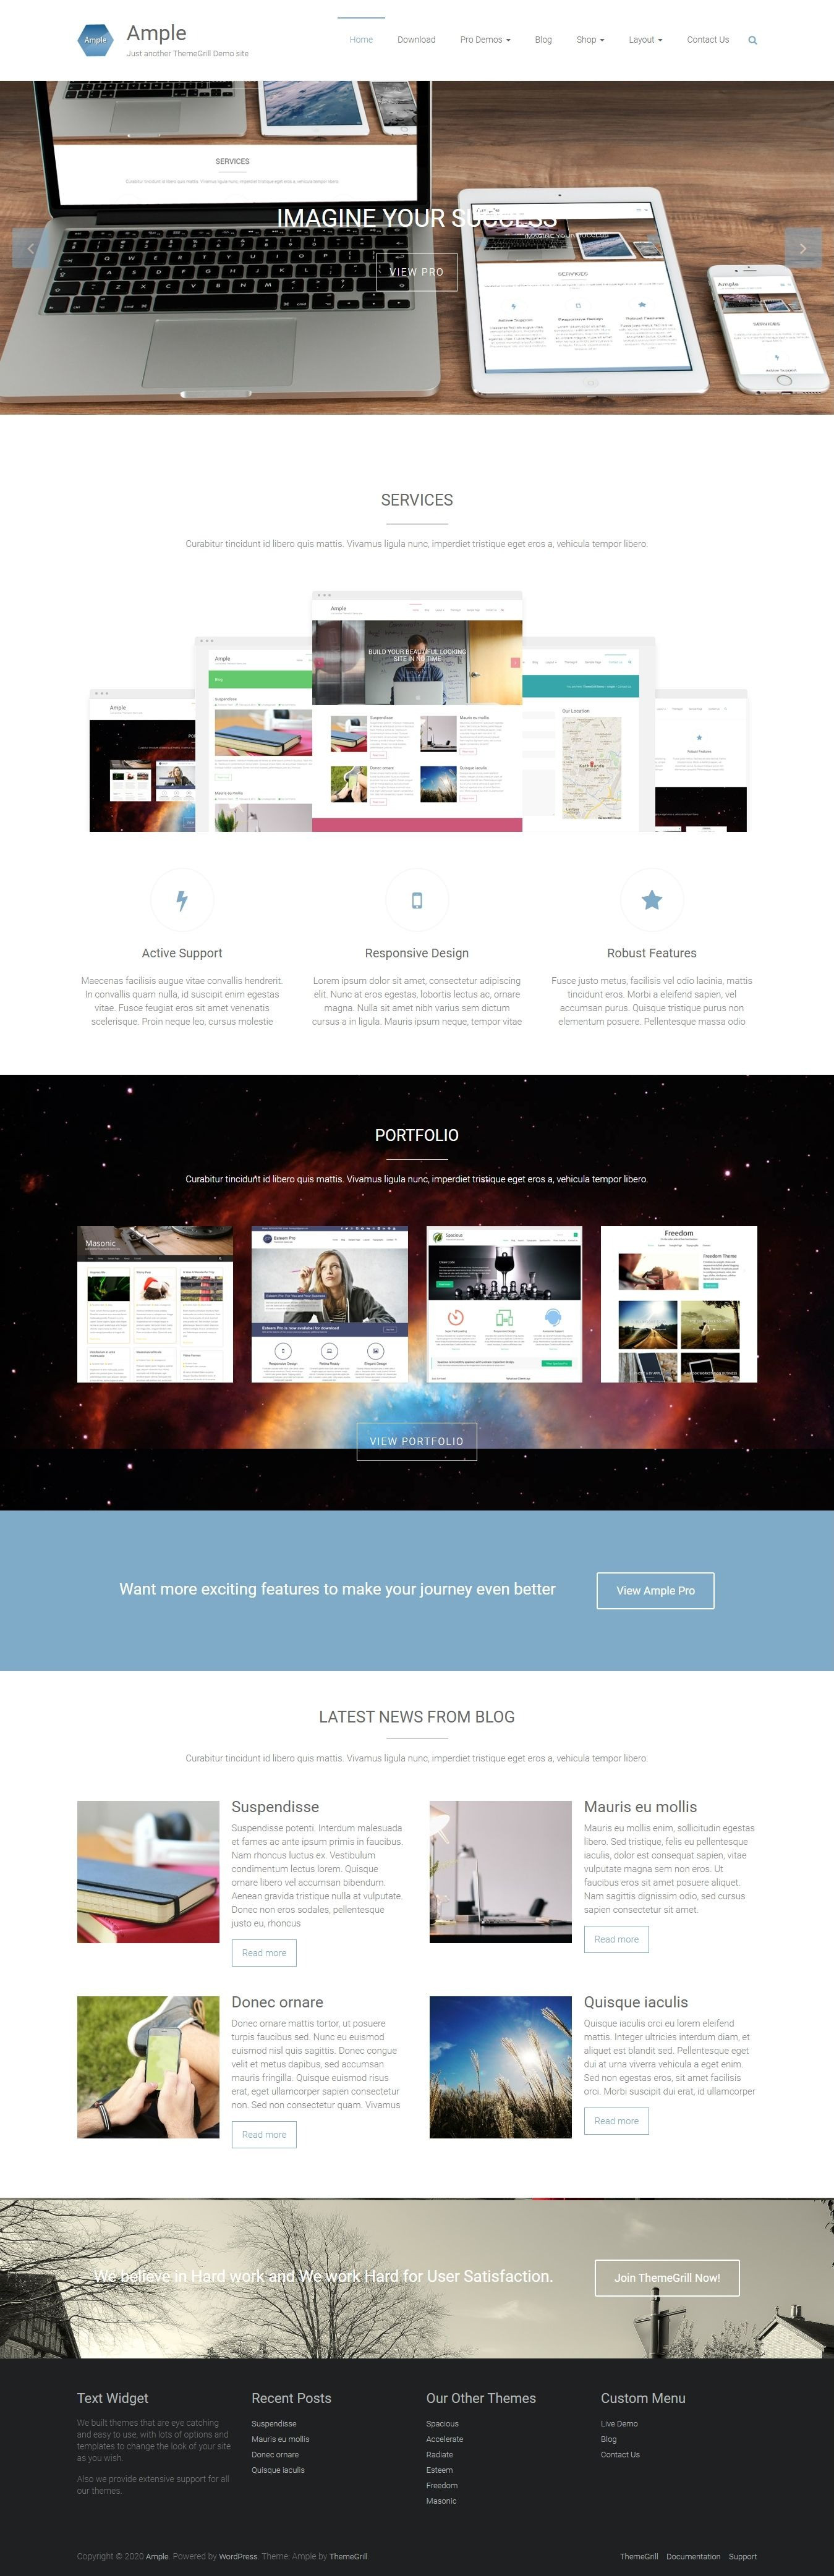 Ample - Free Multipurpose WordPress Theme